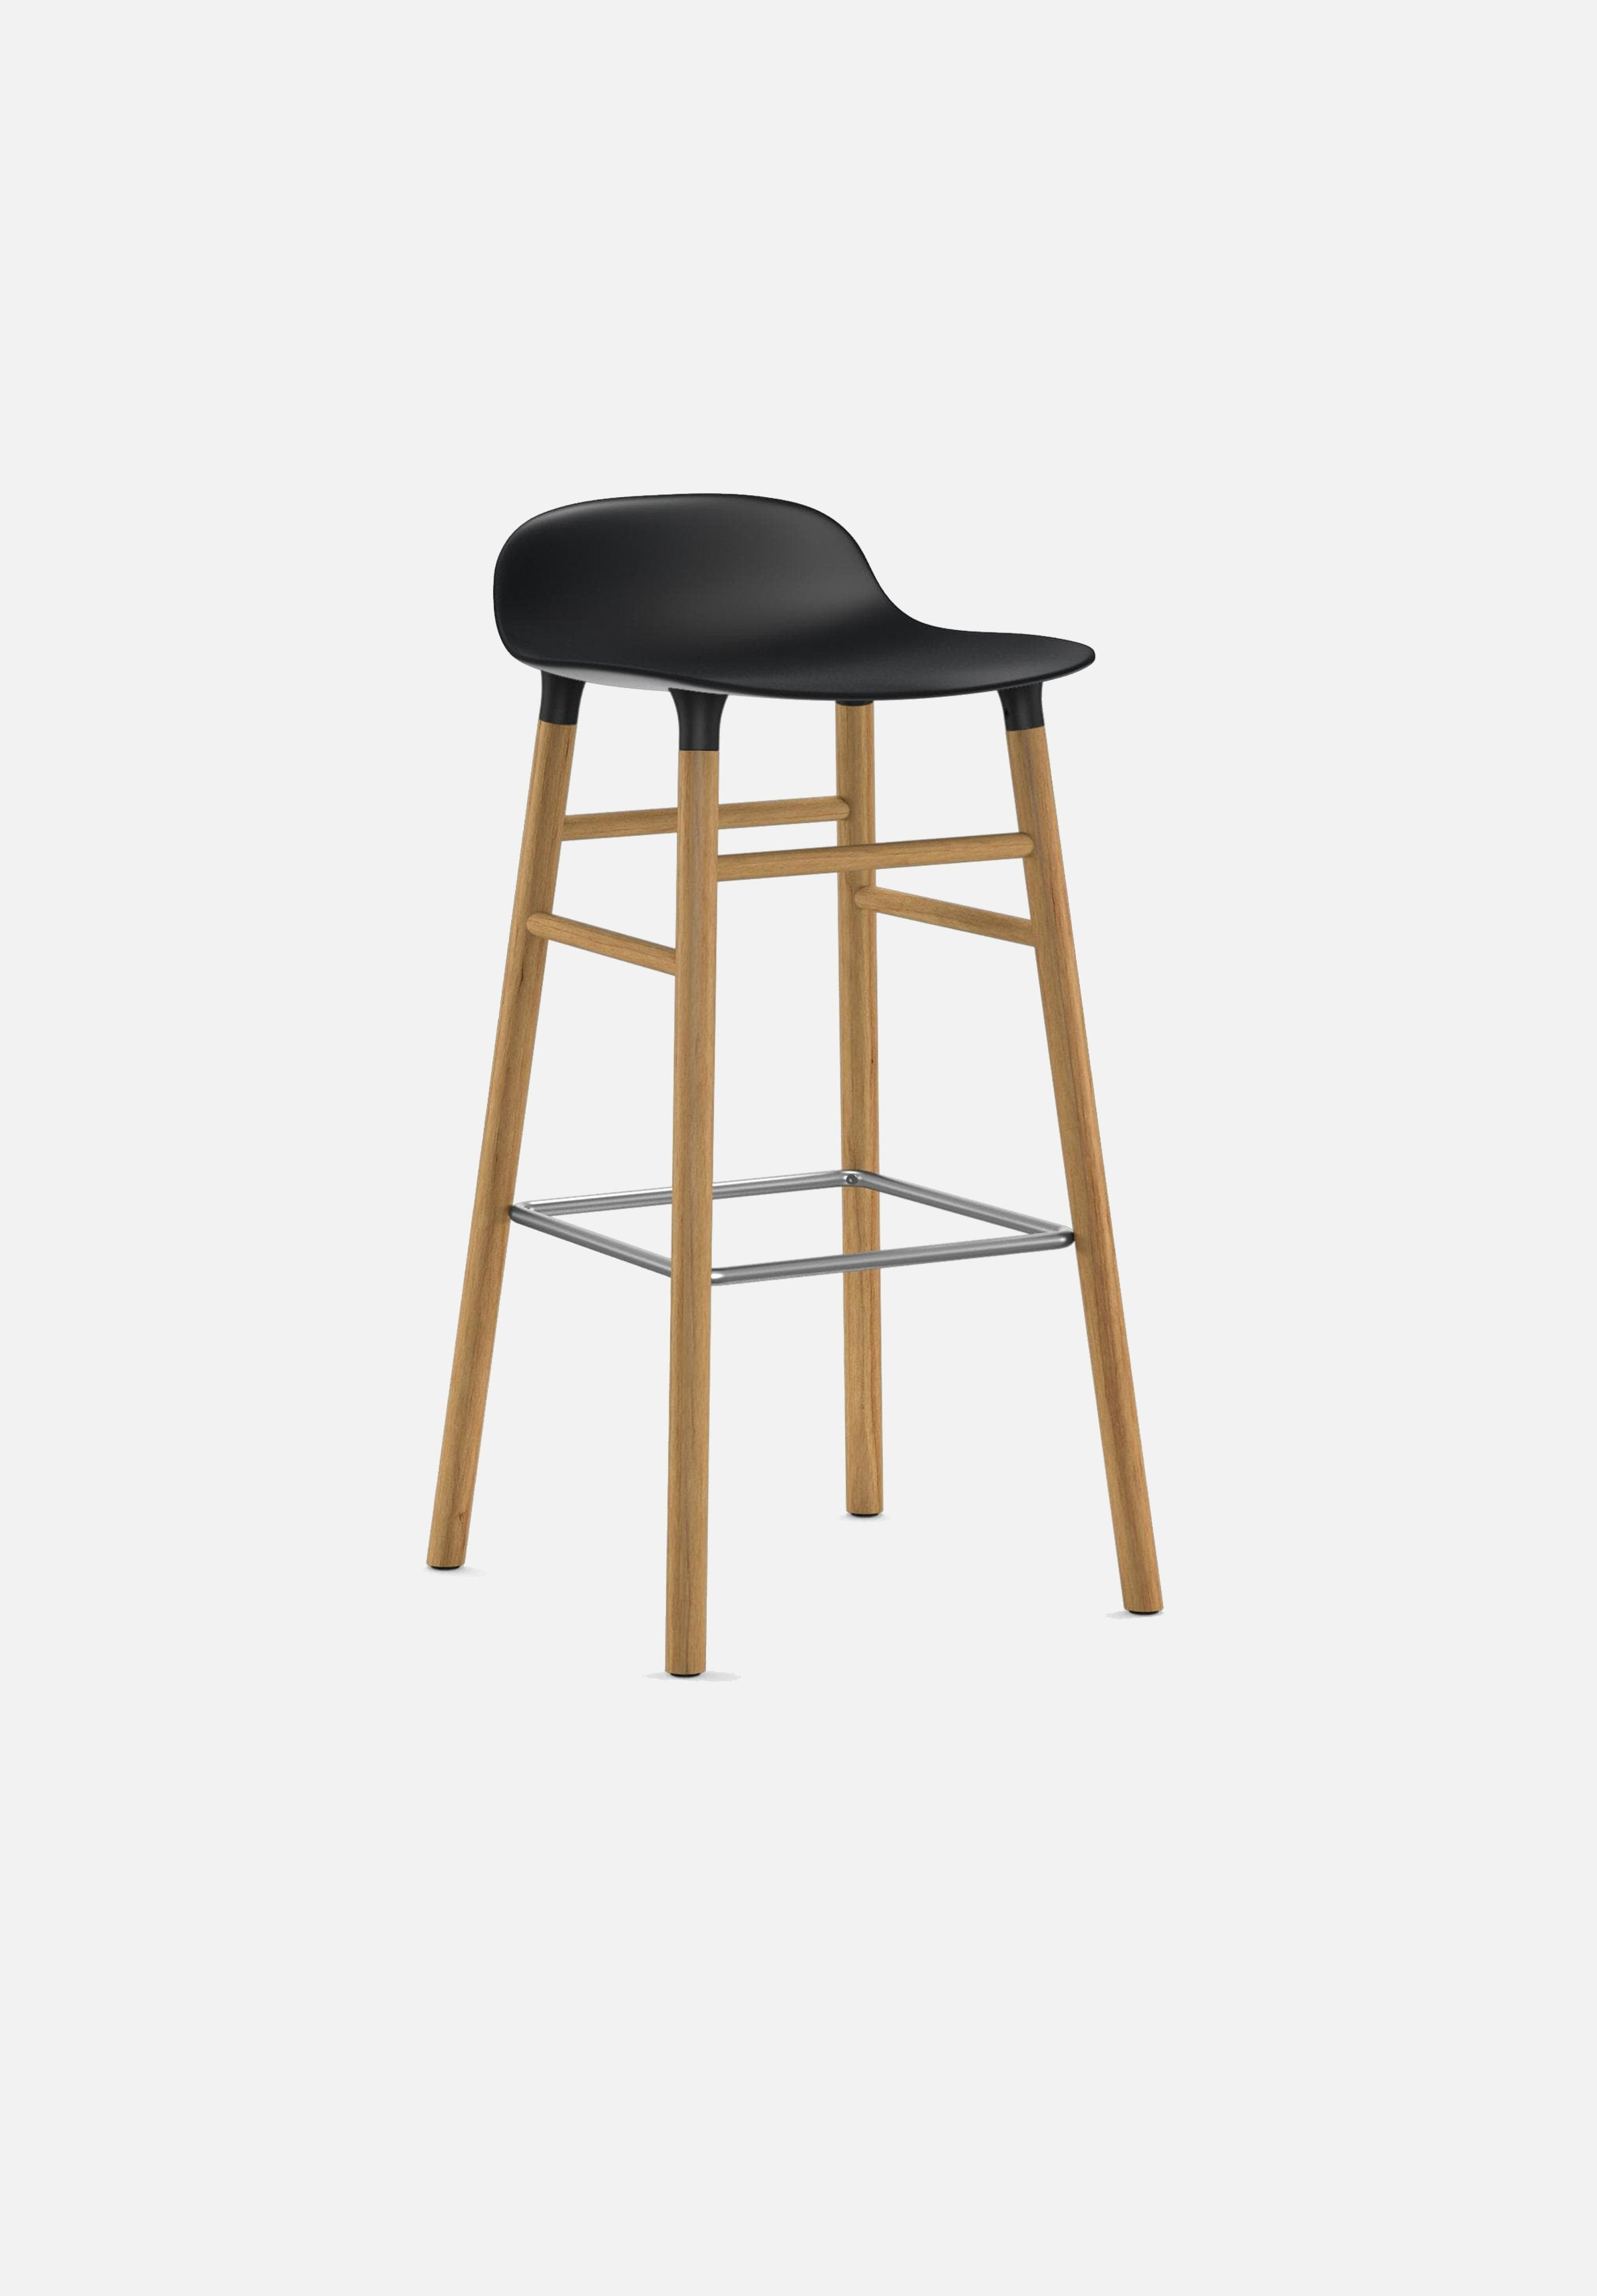 Form Stool — 75cm-Simon Legald-Normann Copenhagen-Black-Solid Oak-Average-canada-design-store-danish-denmark-furniture-interior